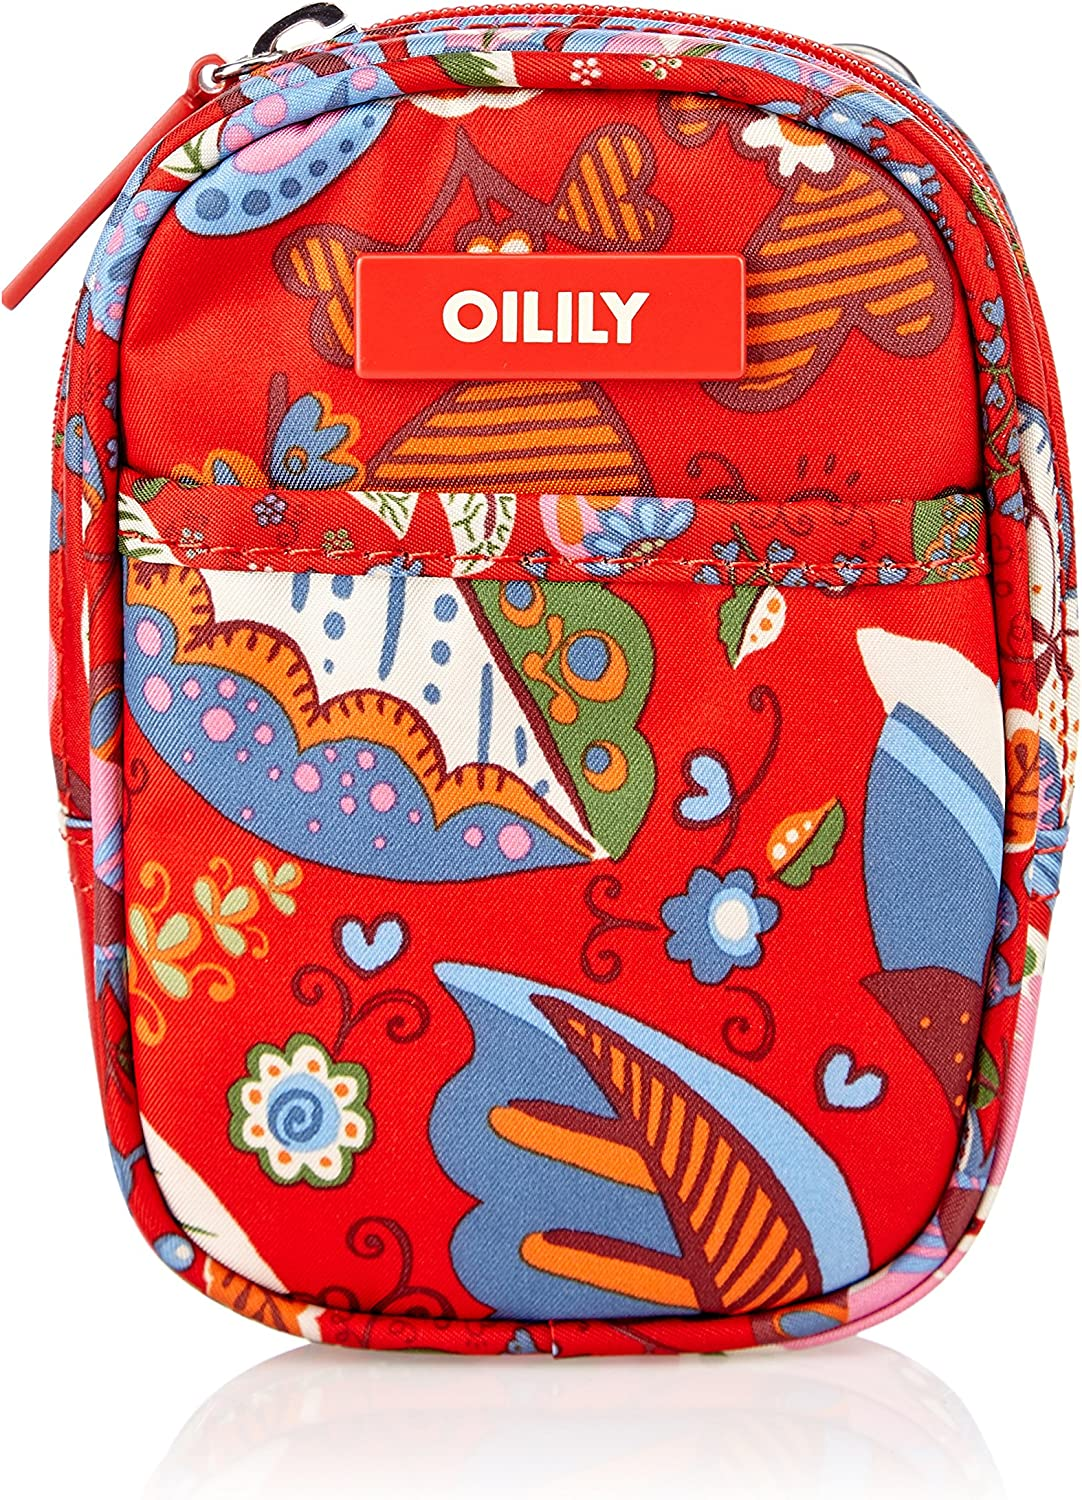 Oilily Luxurious Fall Winter Collection Floral Print Crossbody Pouch